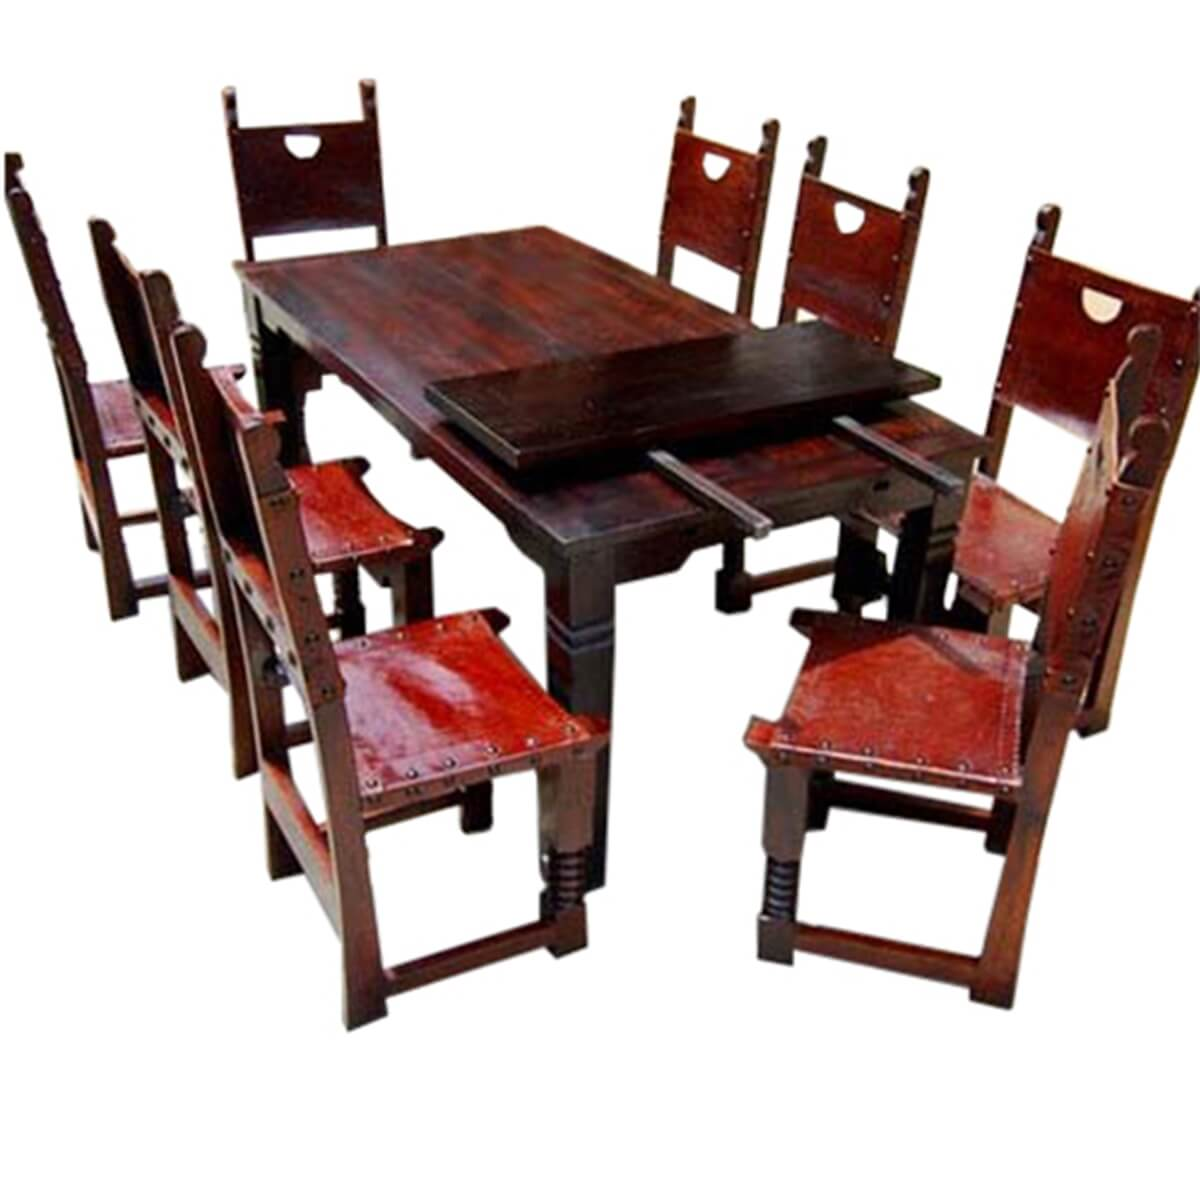 solid wood dining table and chairs chair cover hire leicestershire 9 pc rustic set w extension